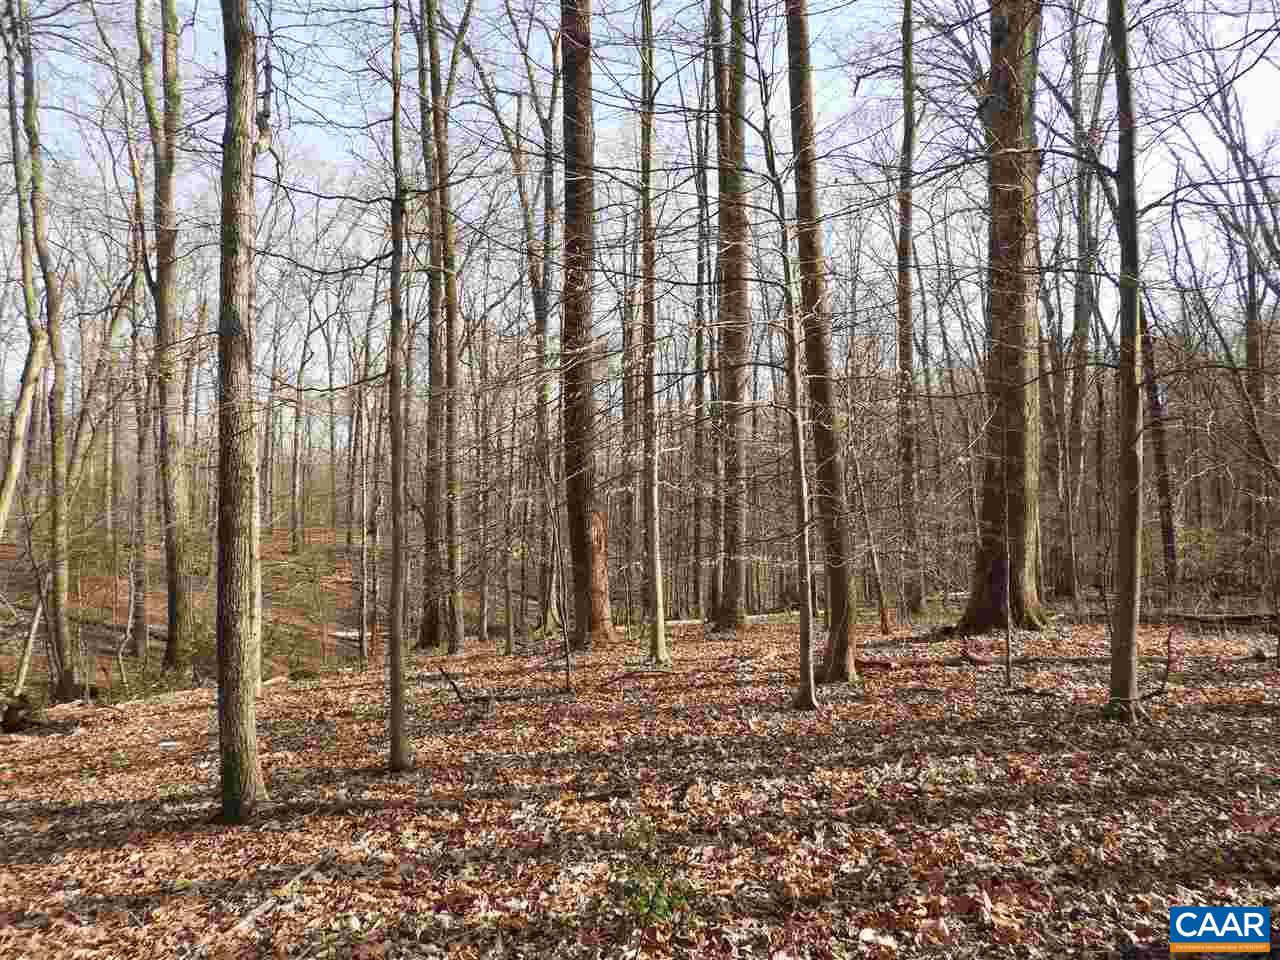 Lots 1,2,3,4 EARLYSVILLE RD lots 1,2,3,4,, EARLYSVILLE, VA 22936